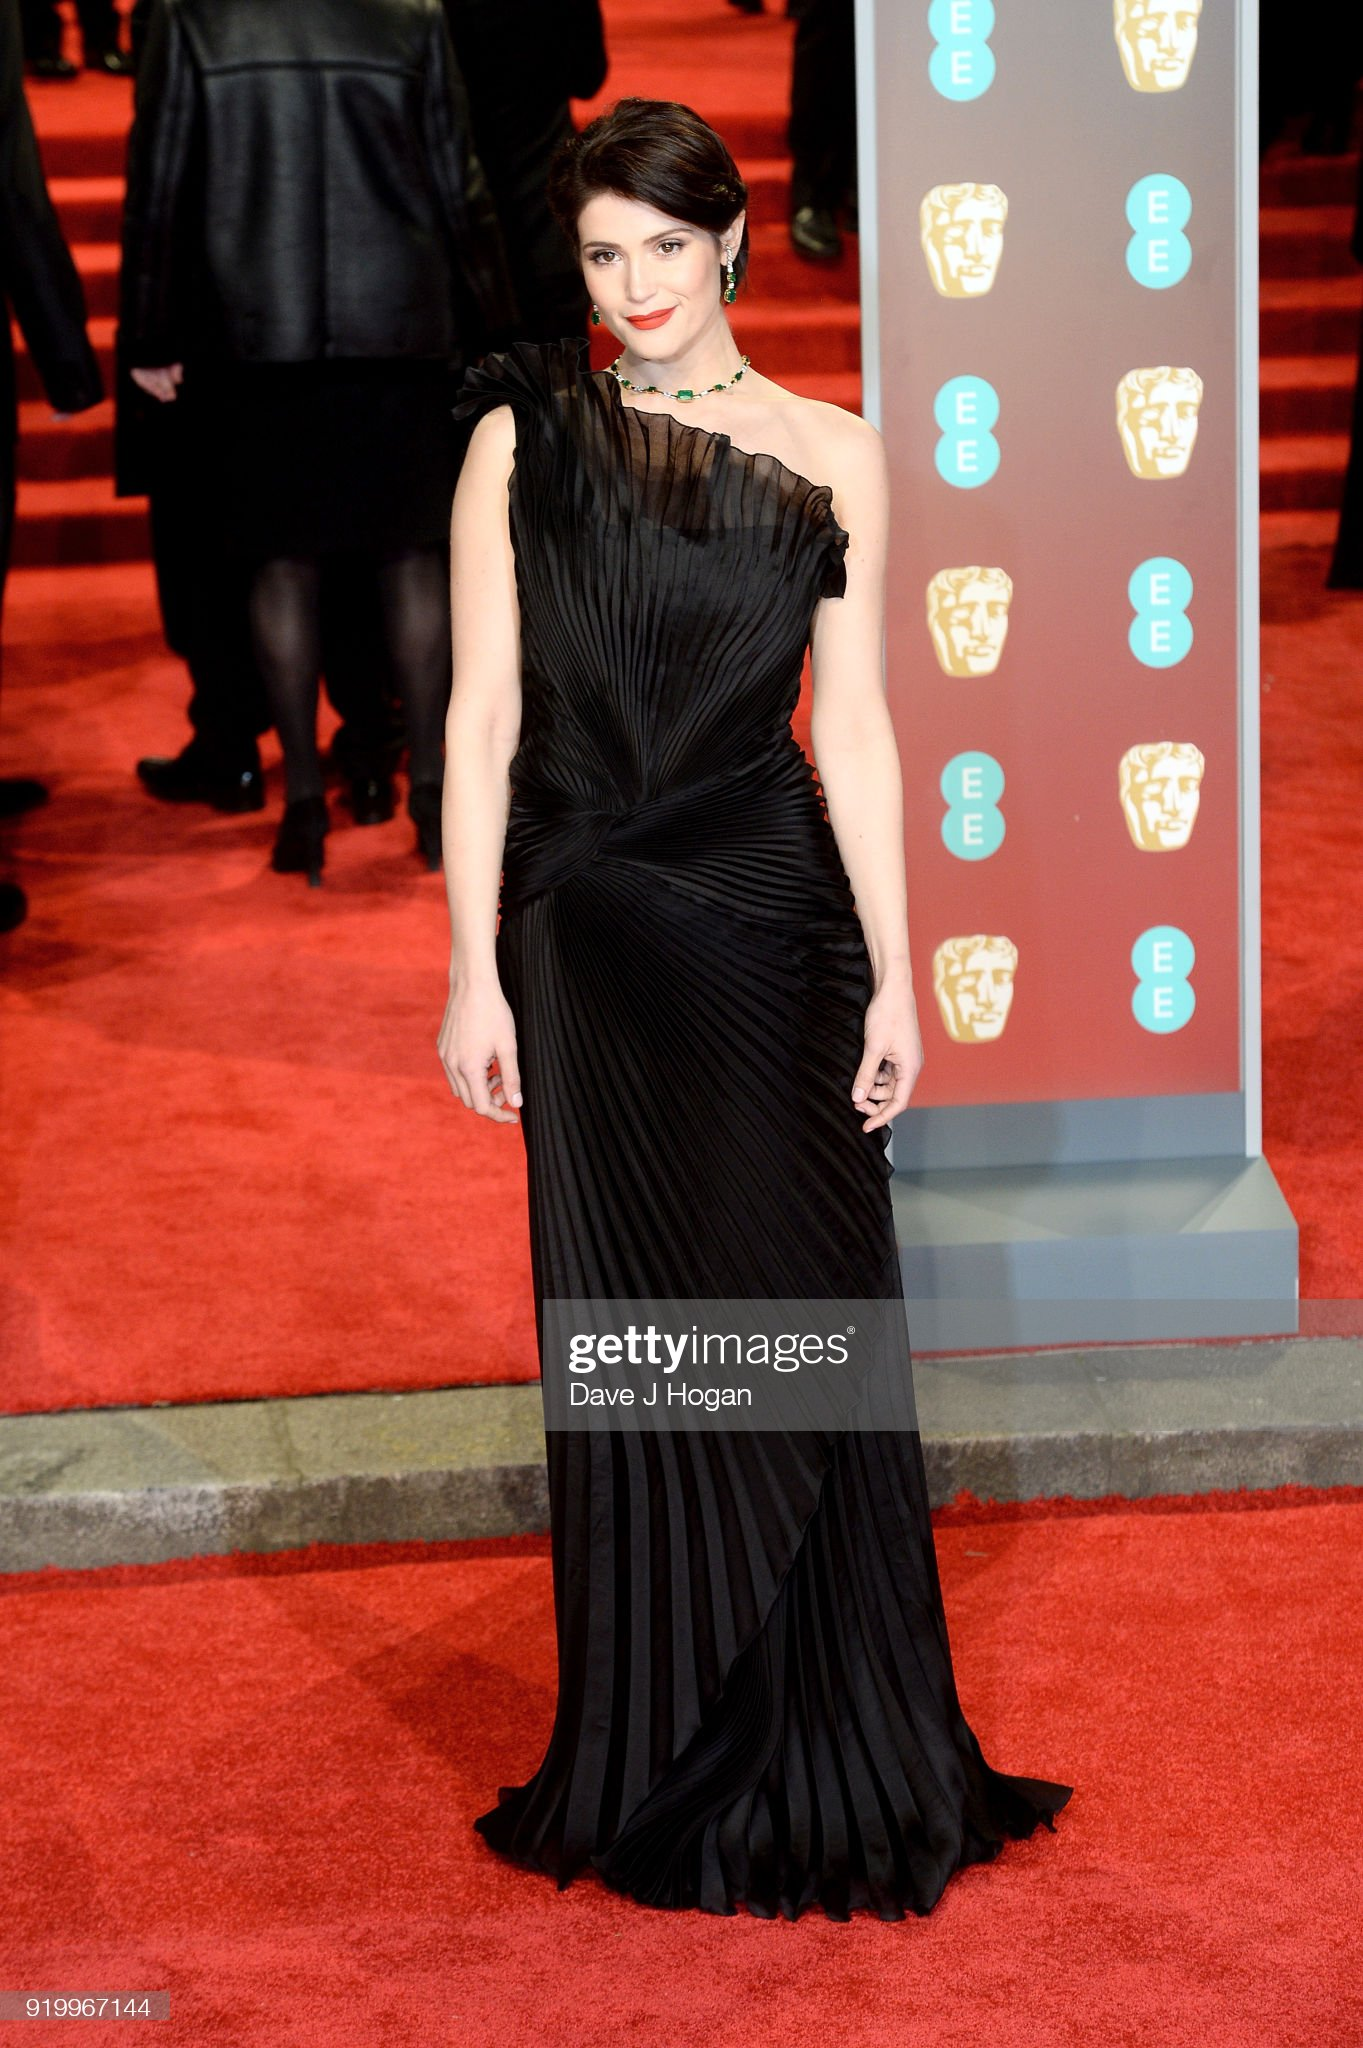 gemma-arterton-attends-the-ee-british-academy-film-awards-held-at-picture-id919967144